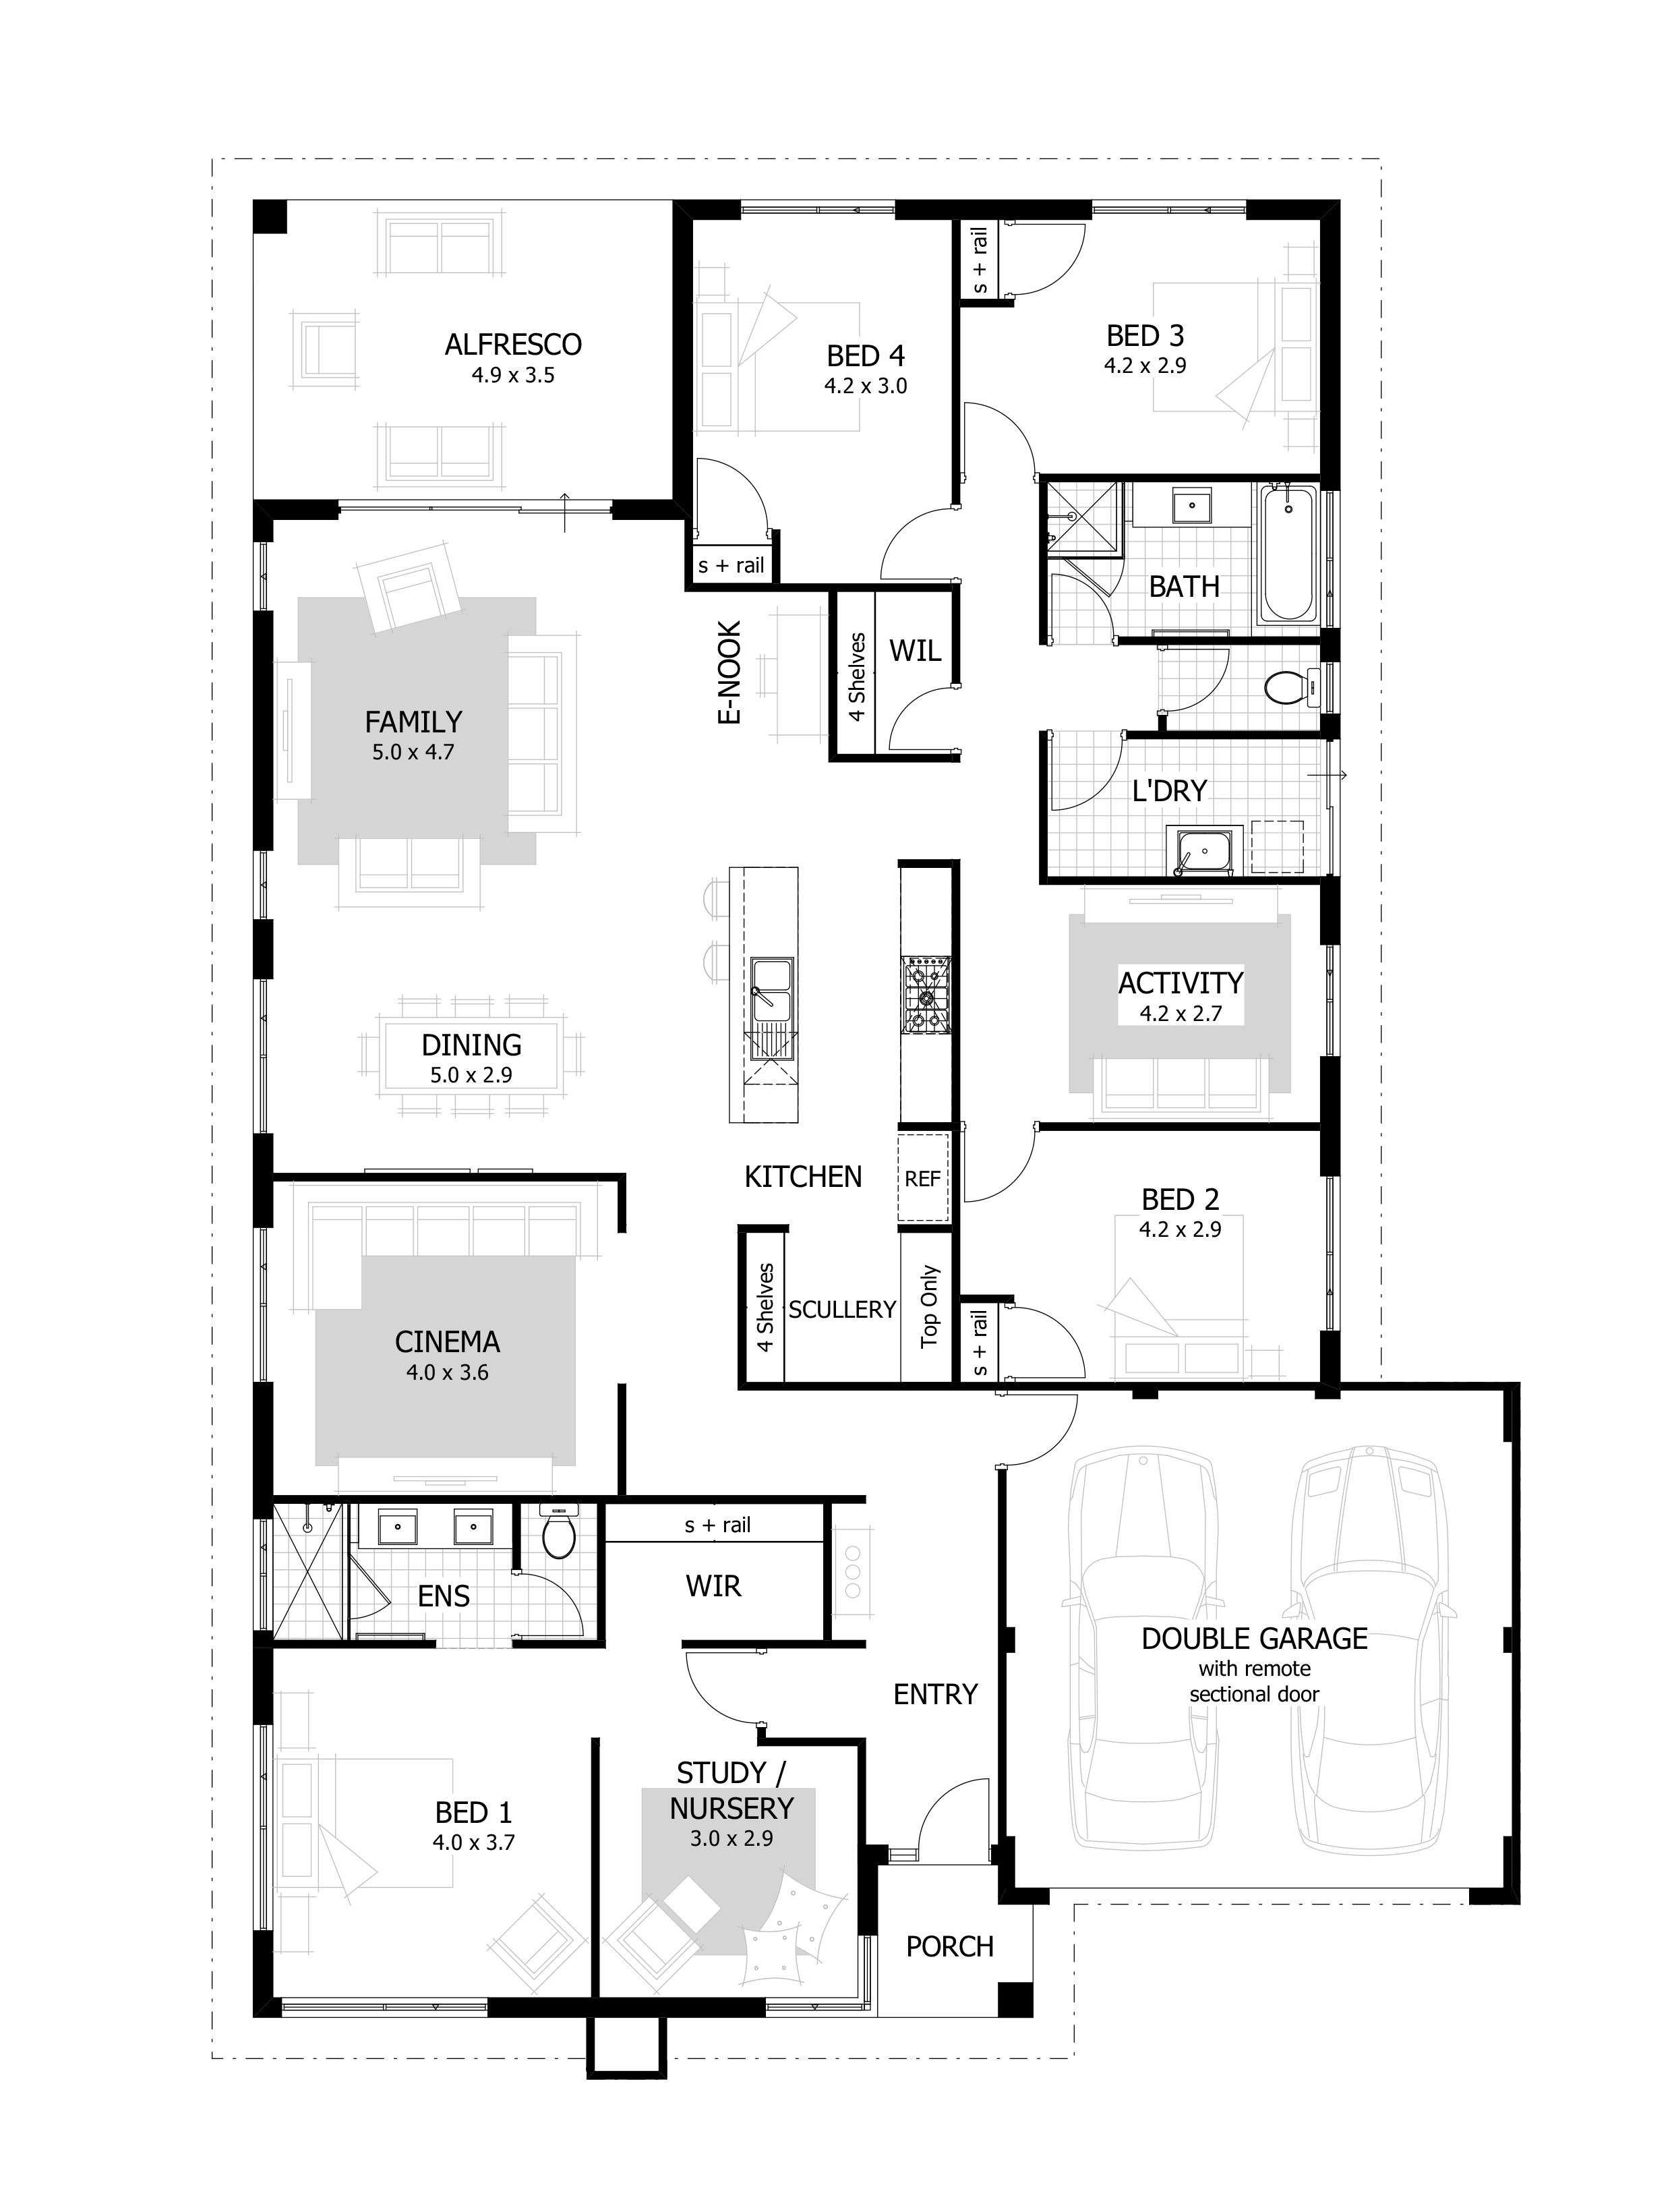 Draw Own House Plans Beautiful 4 Bedroom House Plans & Home Designs Celebration Homes